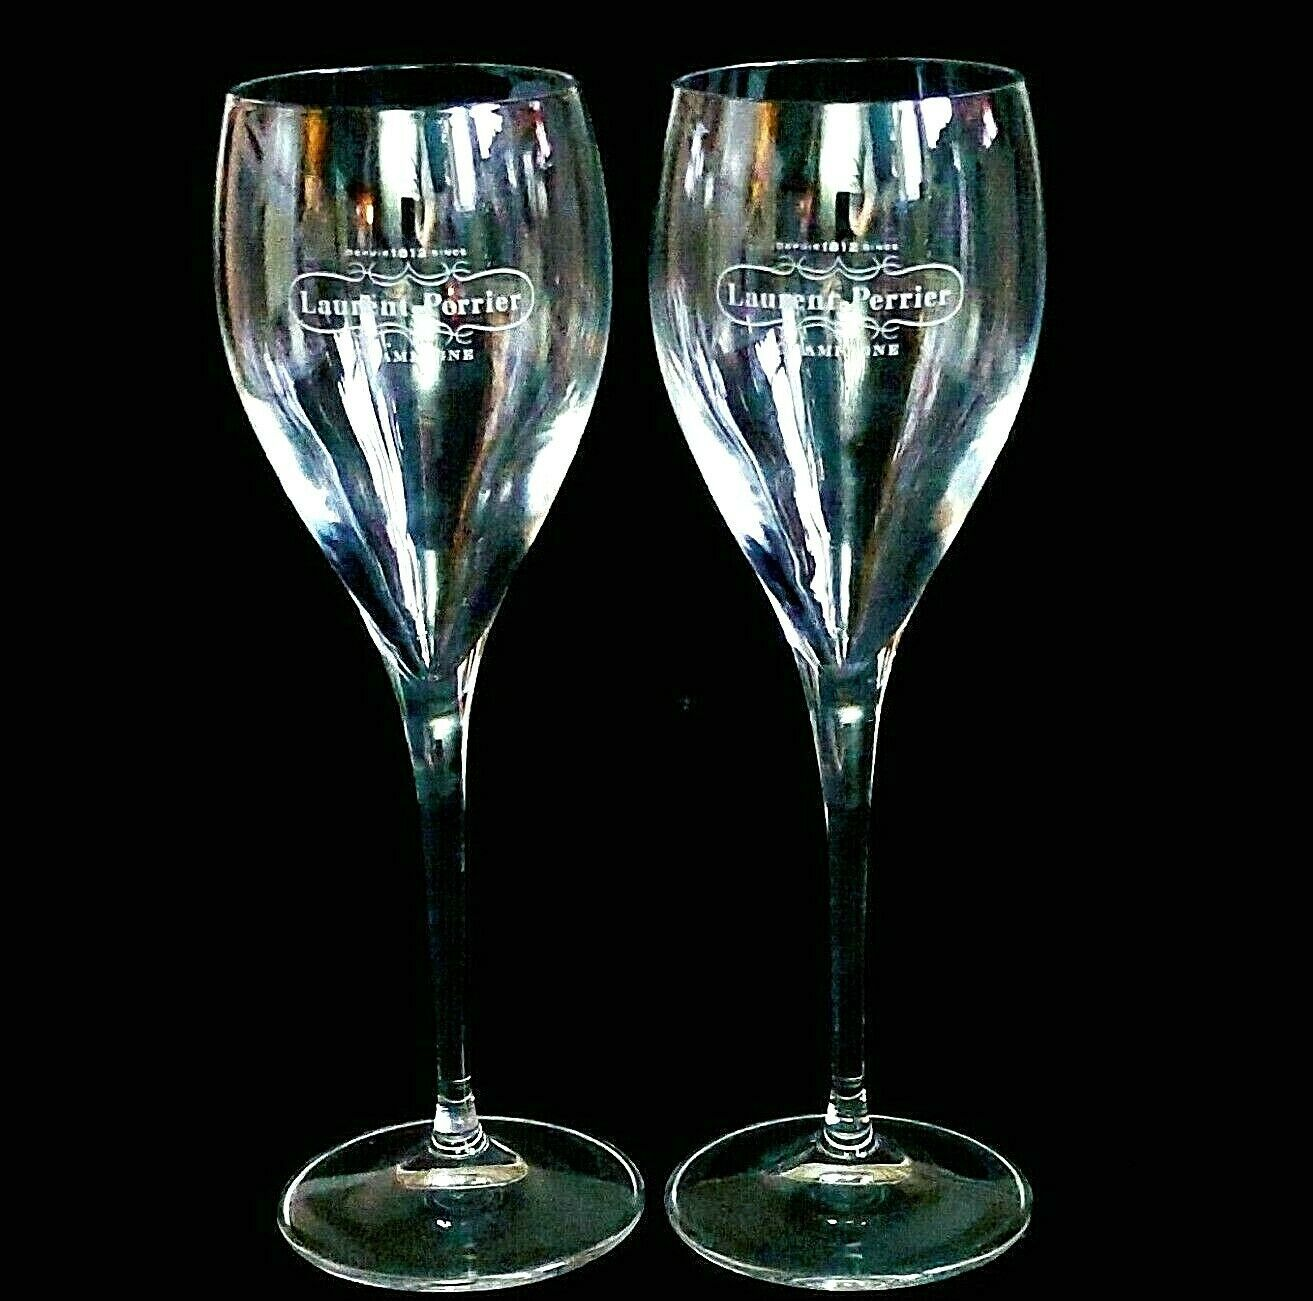 "2 (Two) LAURENT-PERRIER Maison Fonde'e 1812 Crystal Champagne Flutes 7 3/4"" Tall"